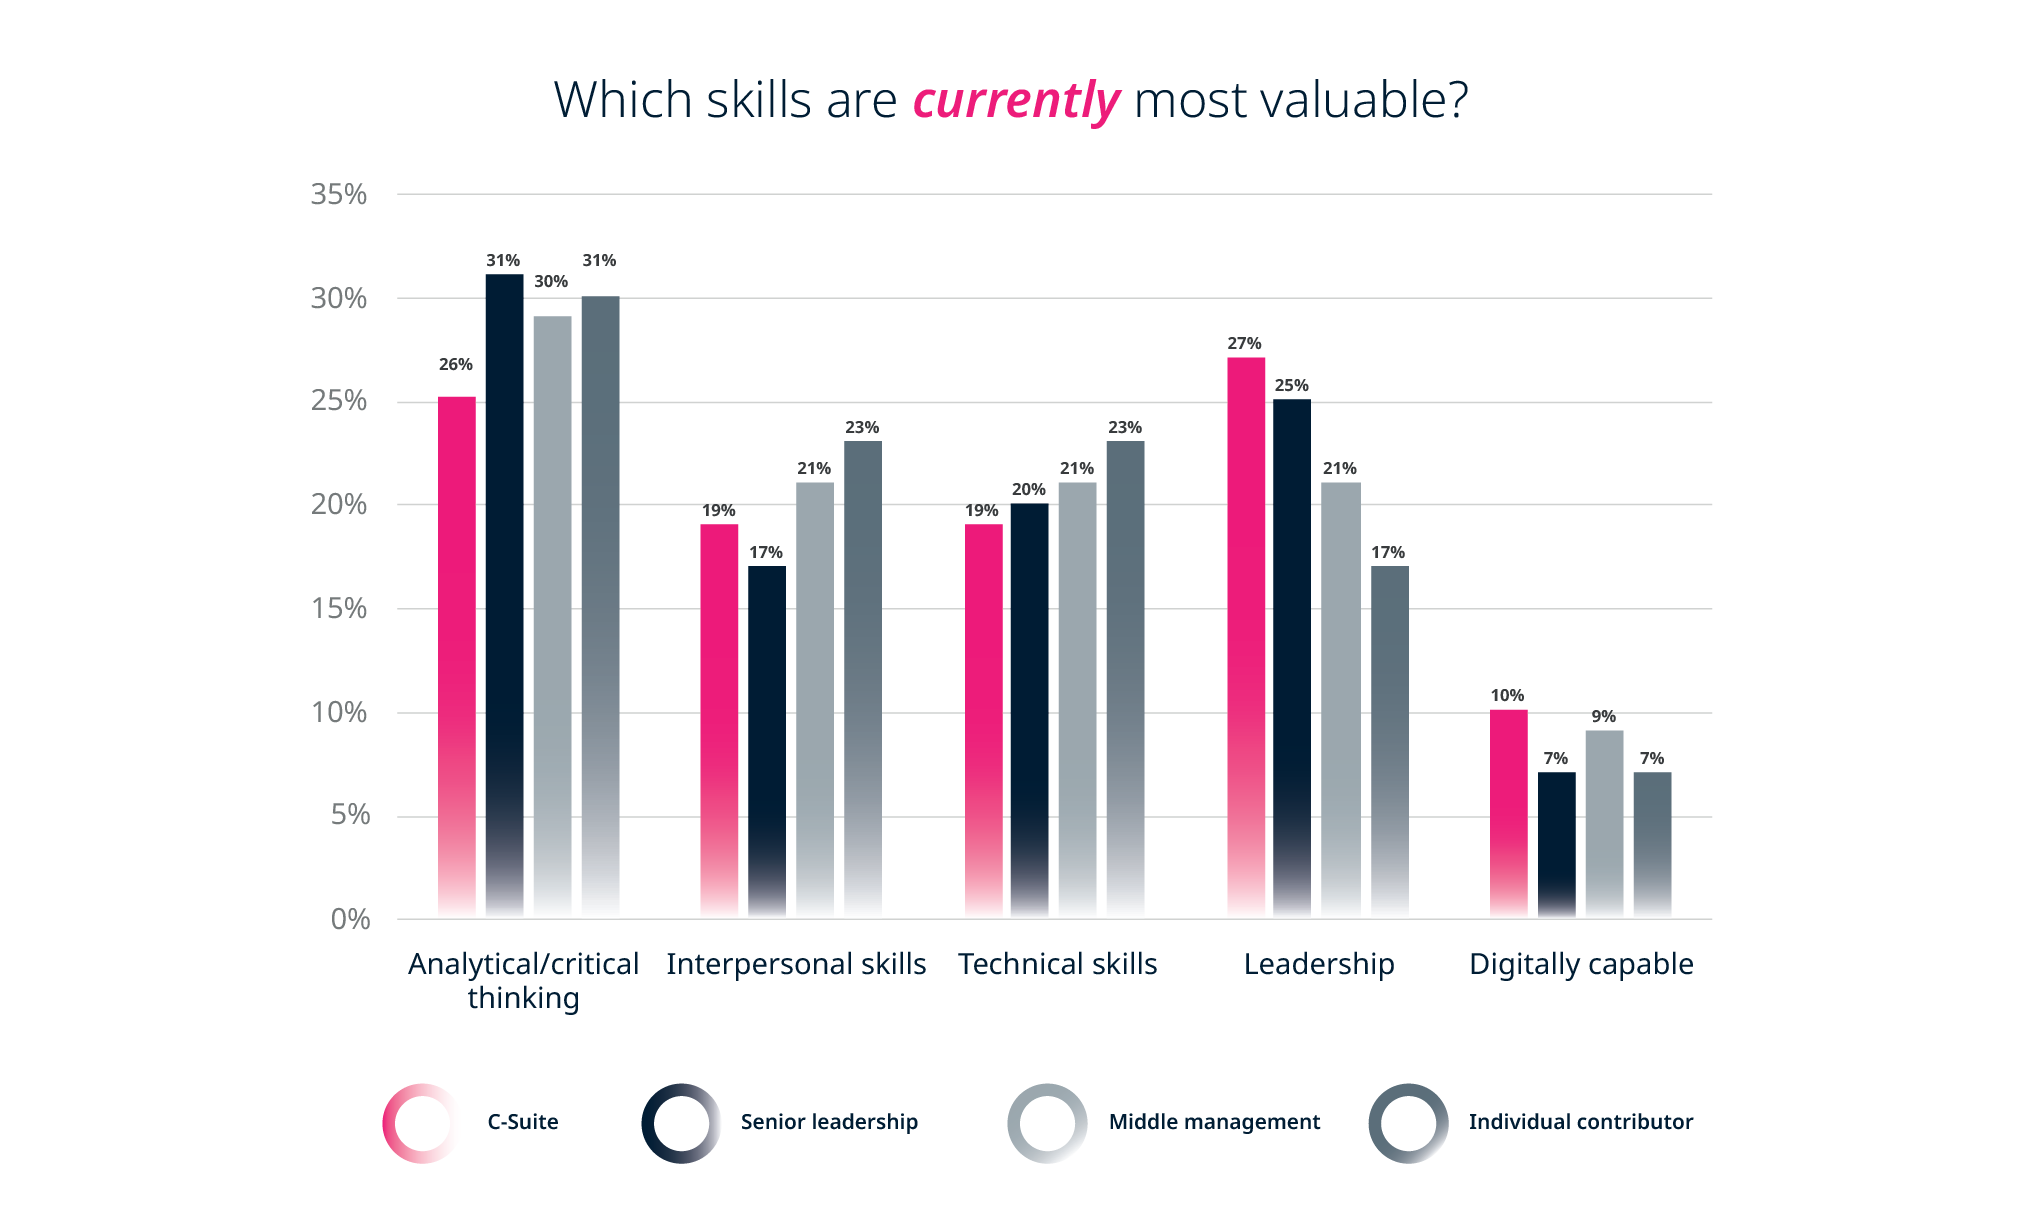 Future of work: Which skills are currently most valuable? - By role / function